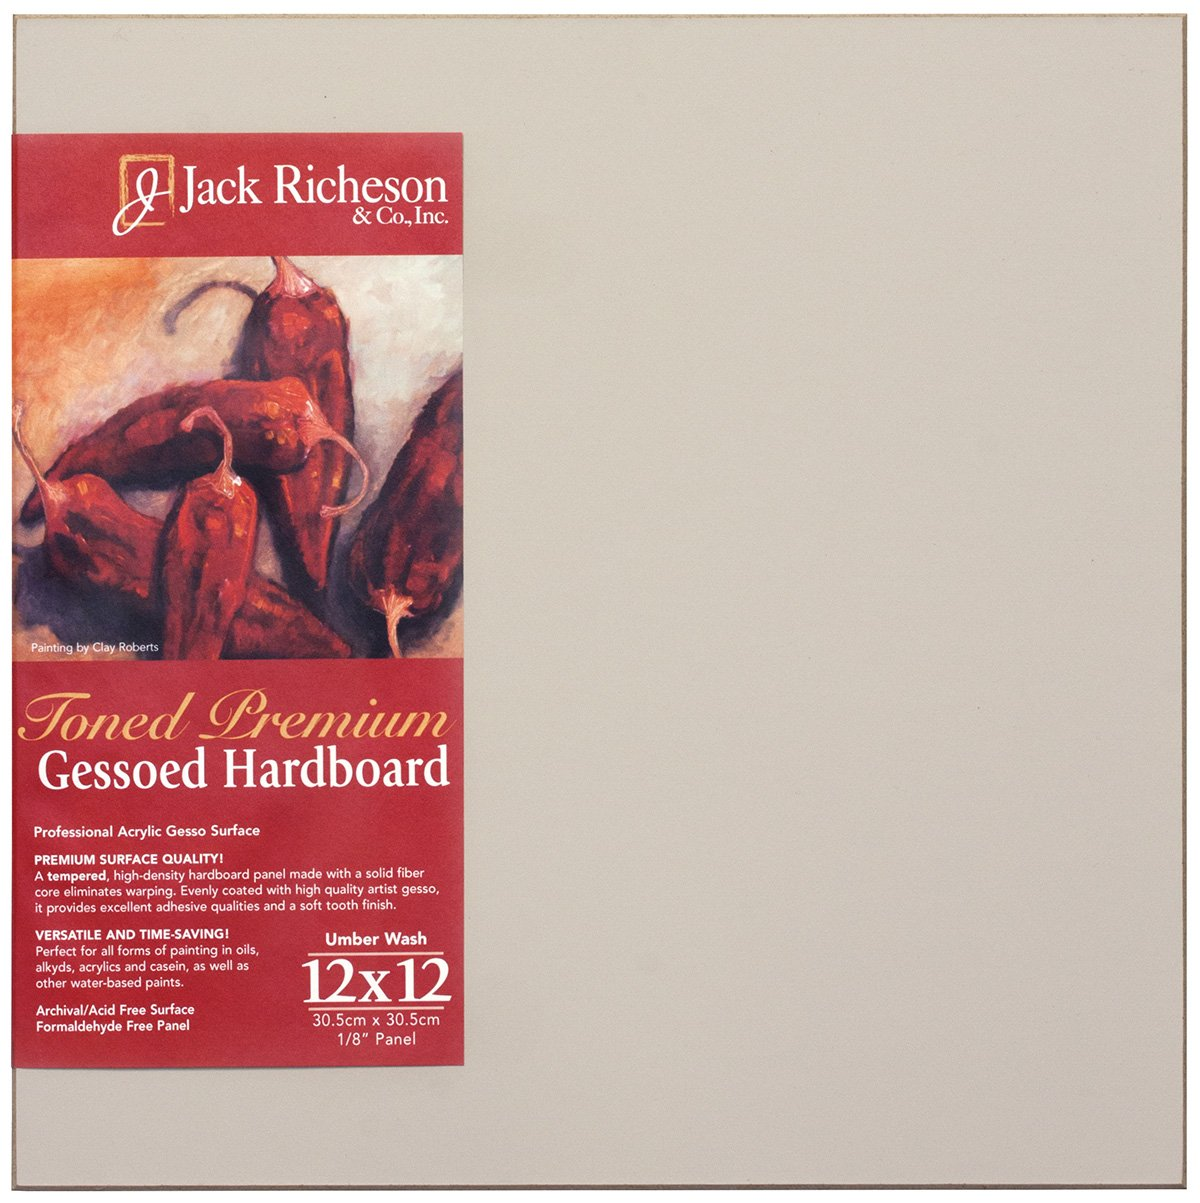 Jack Richeson 1711212 Richeson Umber Wash Toned